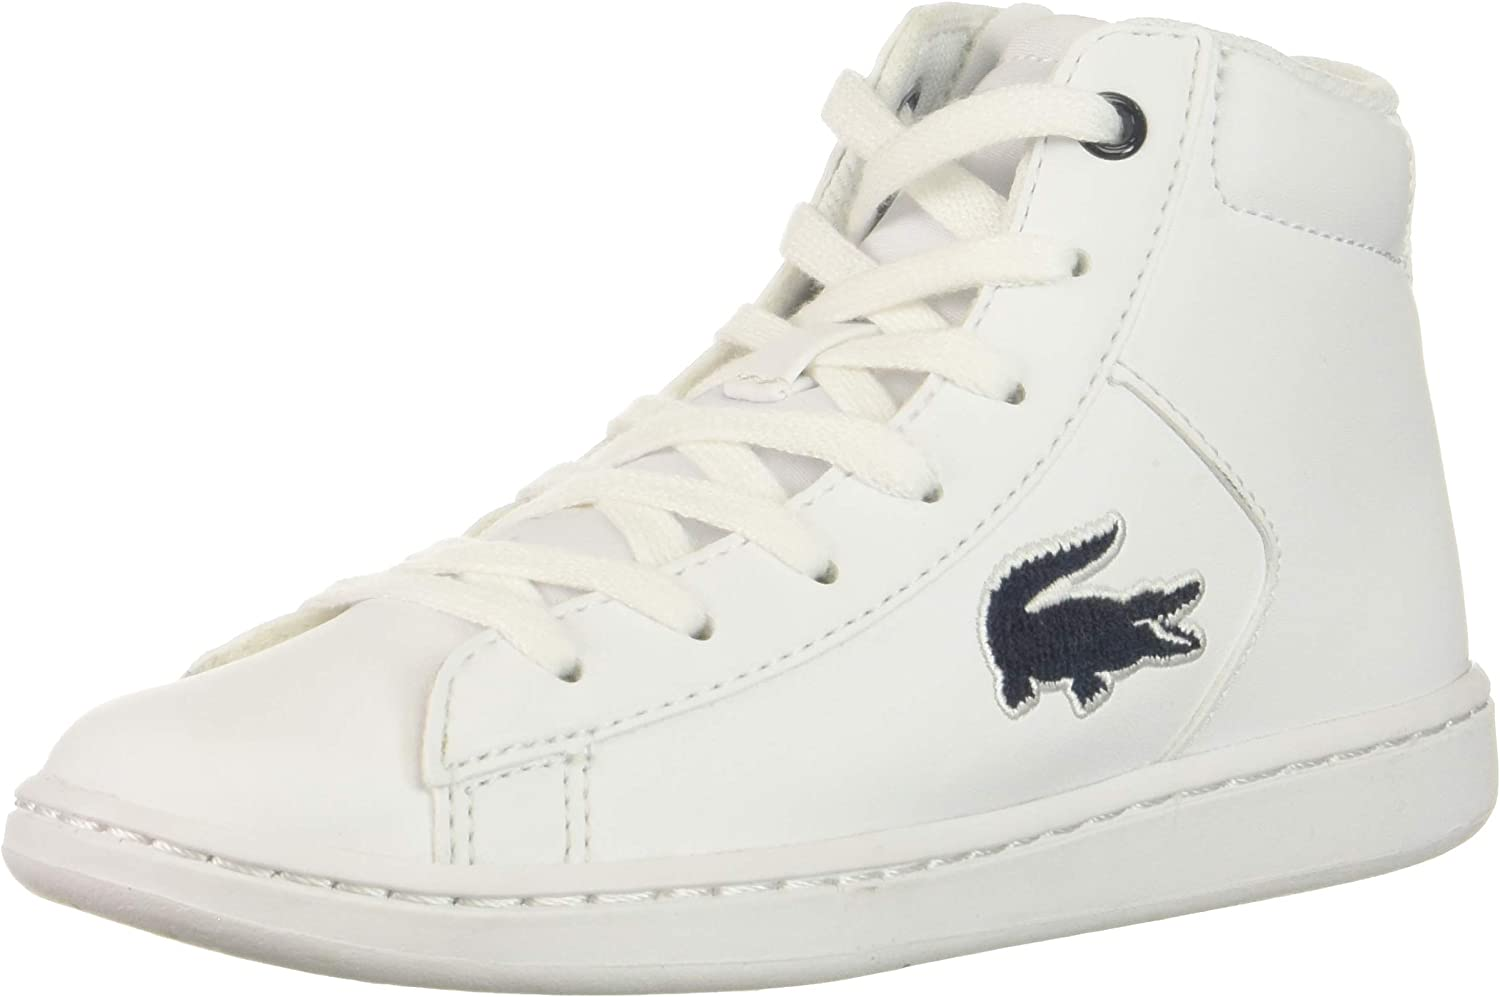 Lacoste Unisex-Child Kid's Carnaby Sneaker Sale SALE% Our shop OFFers the best service OFF